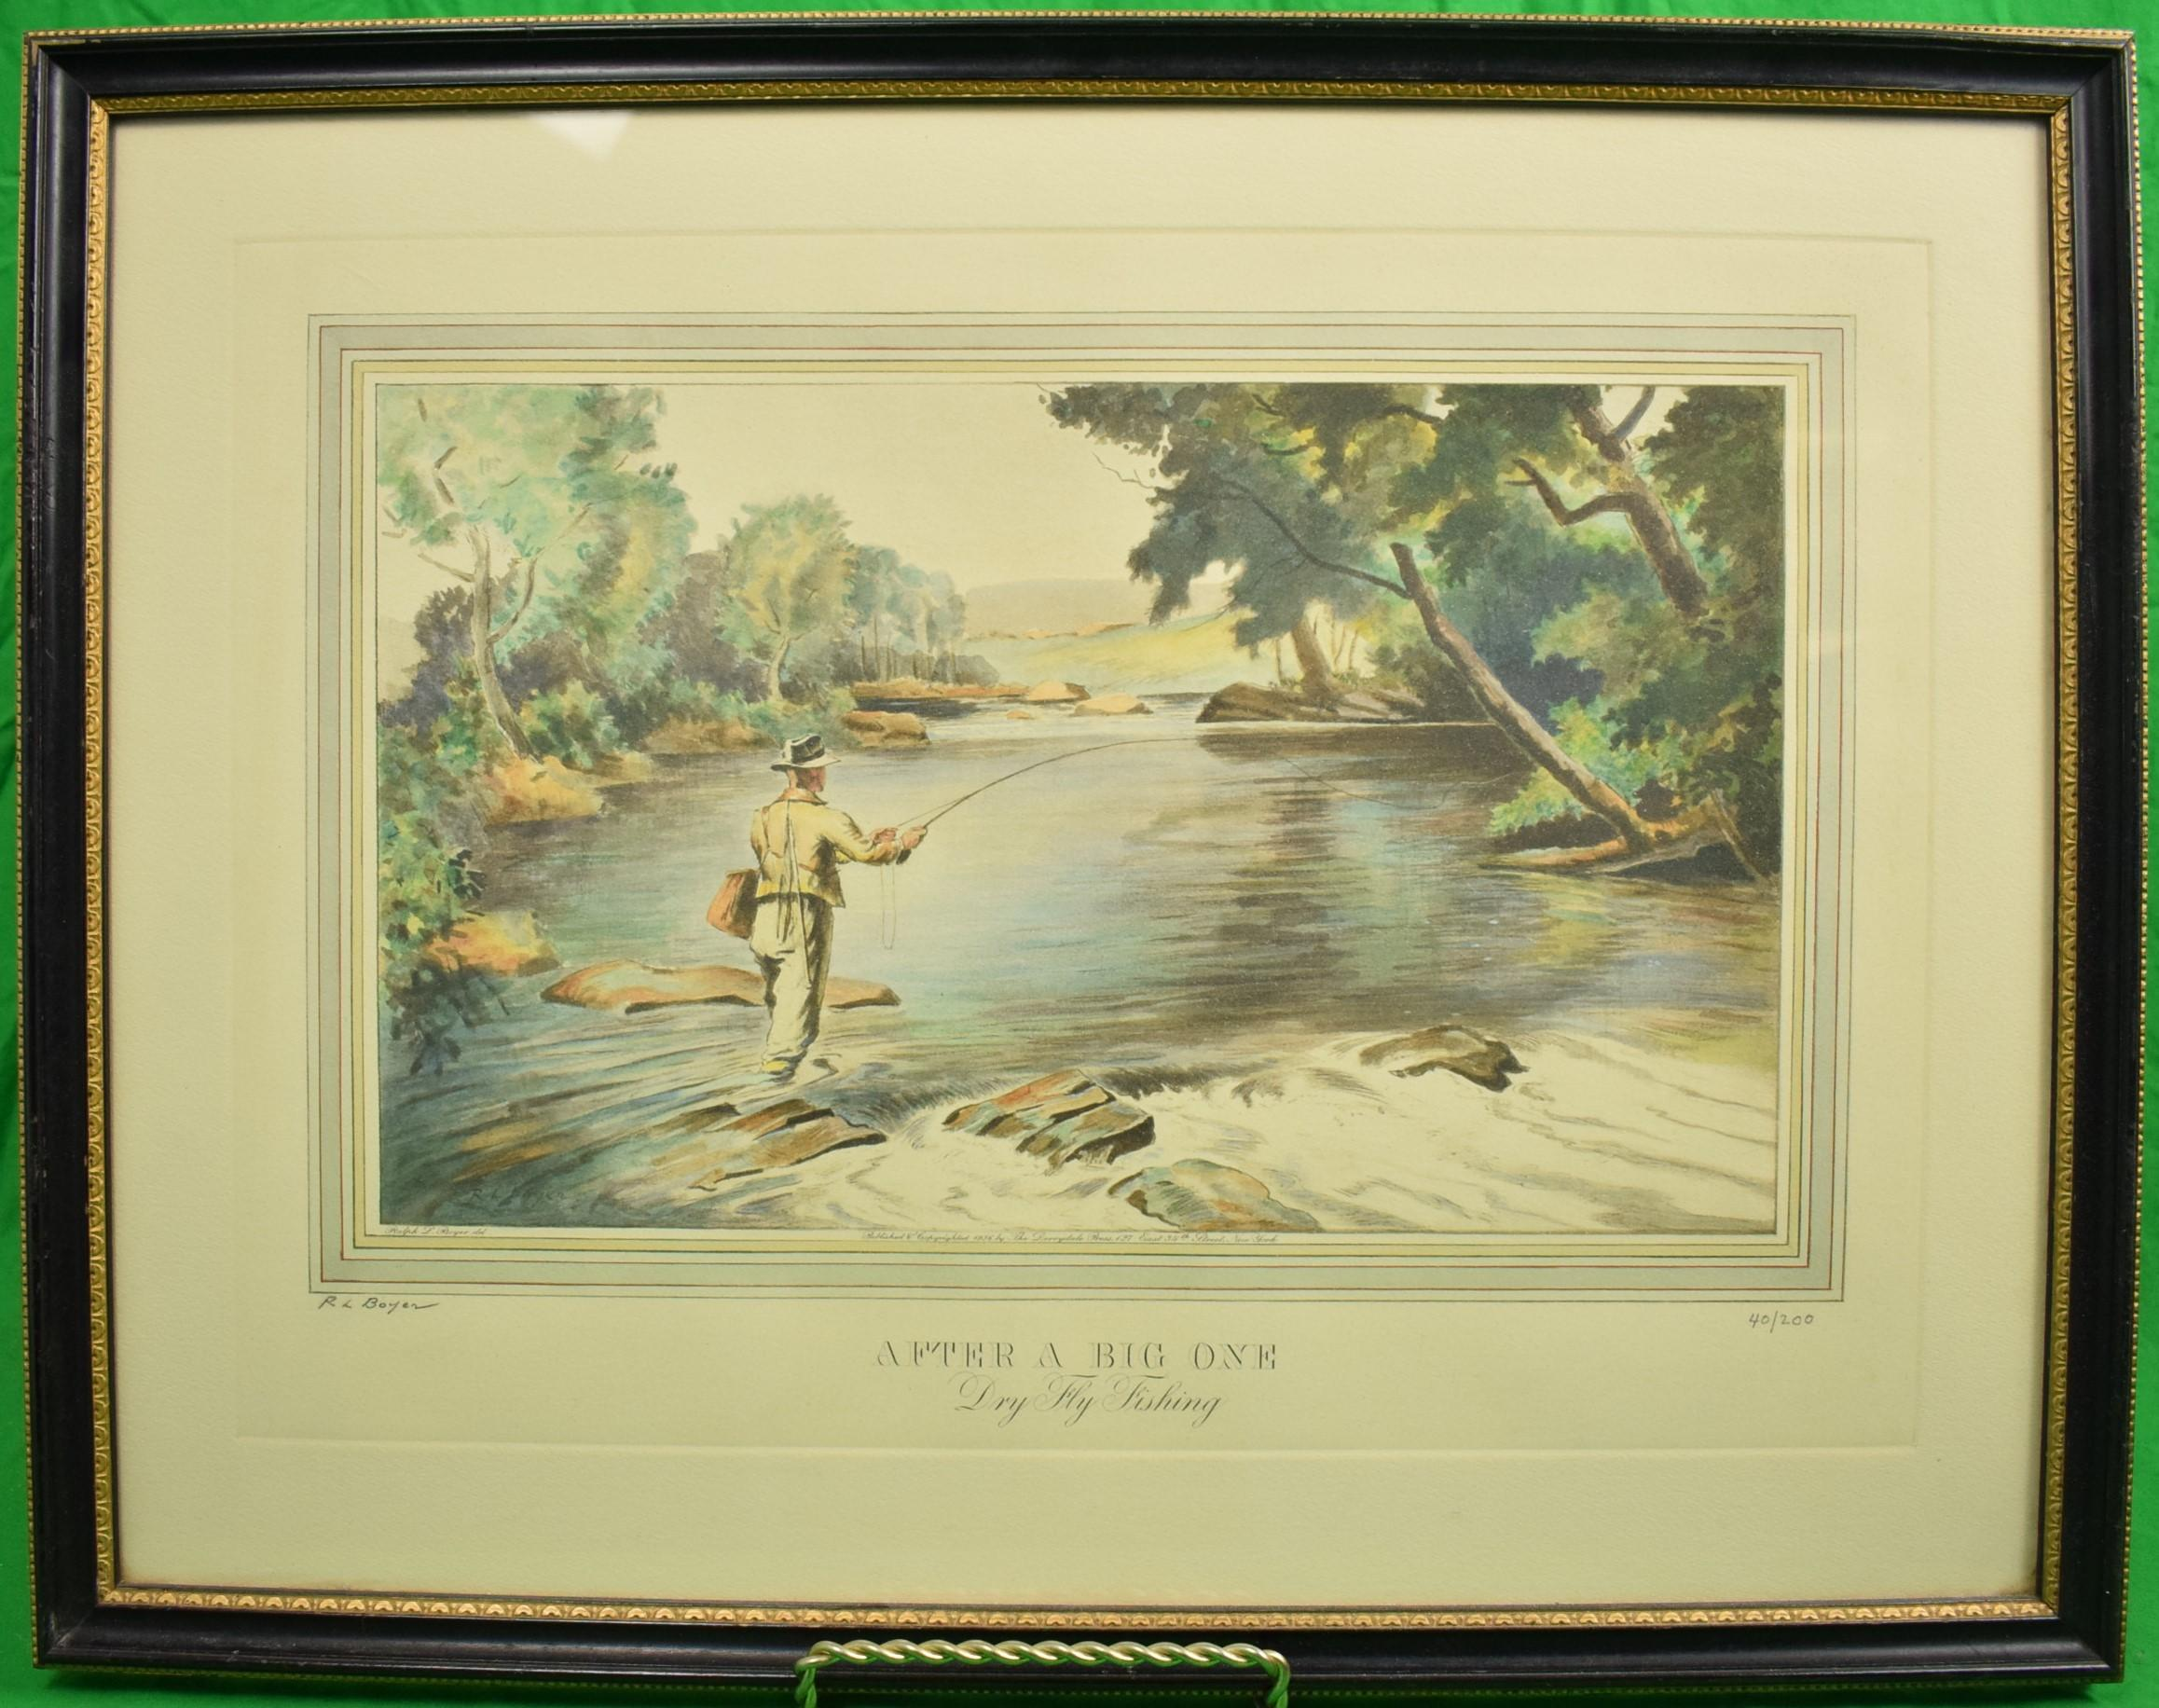 """Ralph L. Boyer 1936 Etching w/ Aquatint """"After a Big One- Dry Fly Fishing"""""""